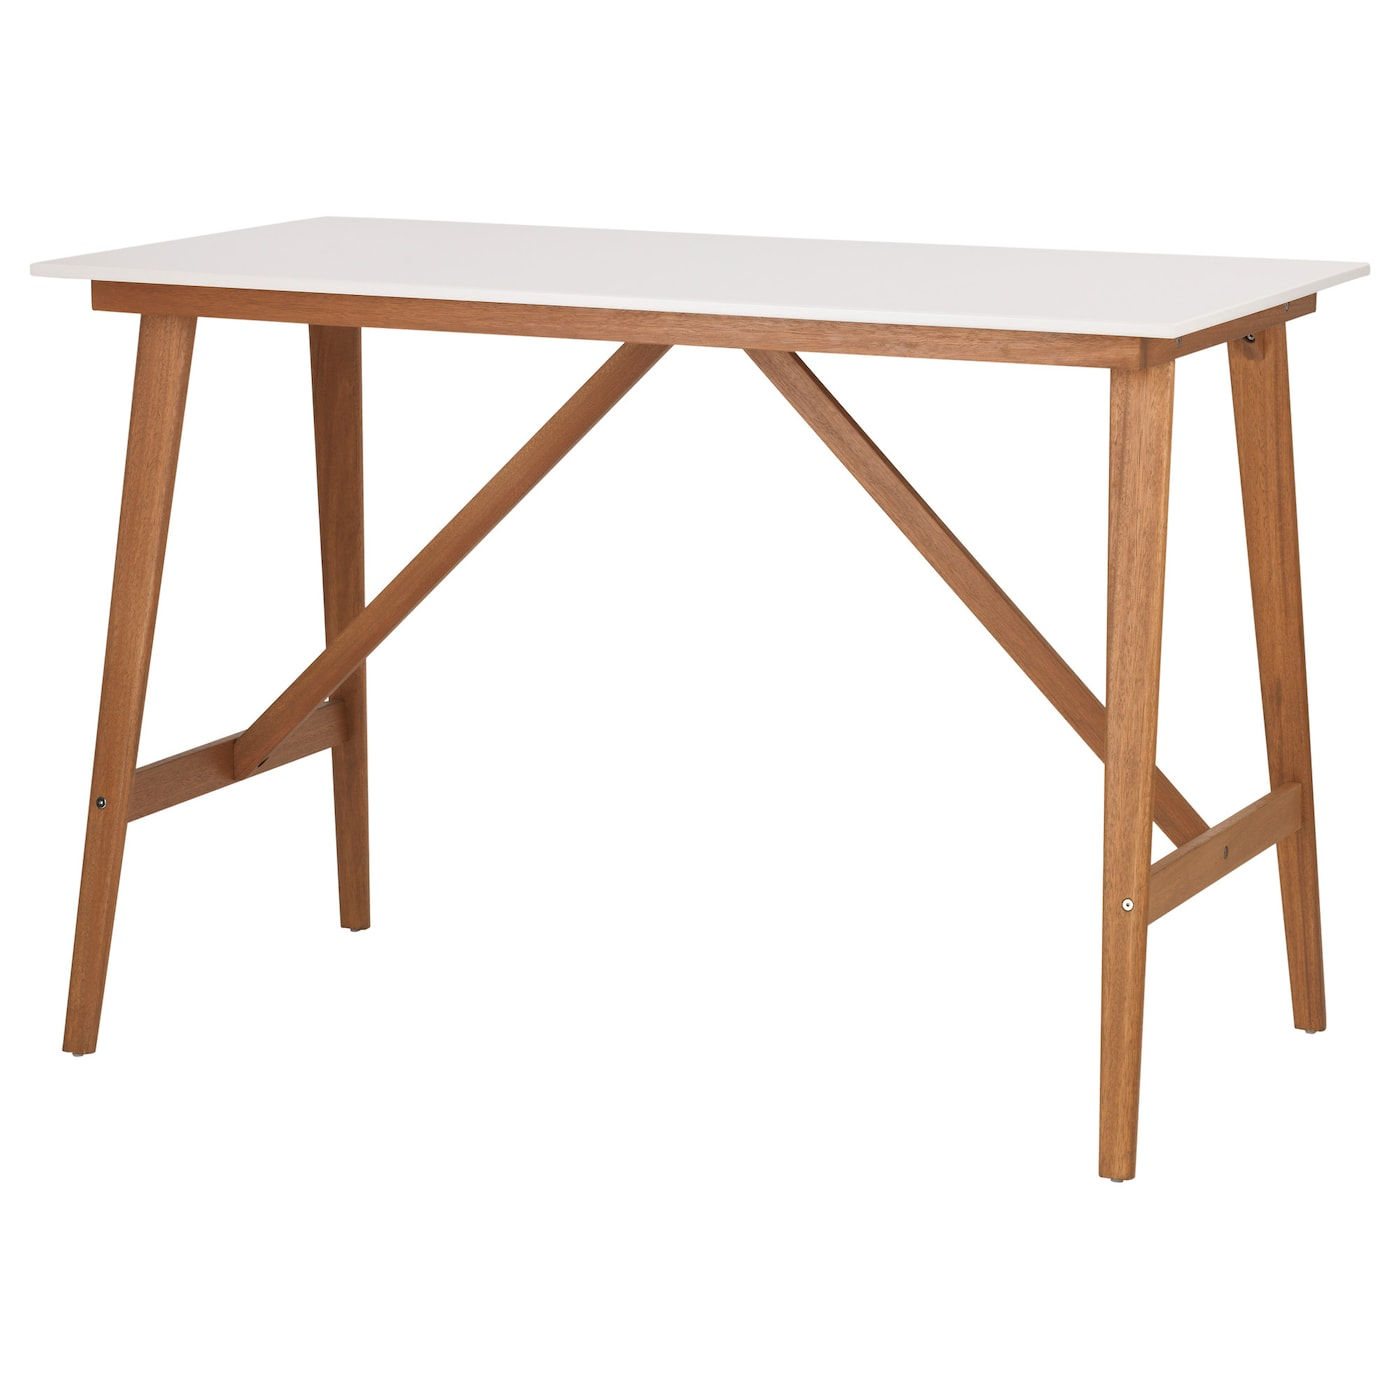 Fanbyn bar table white 140x78x95 cm ikea for Bar stool table